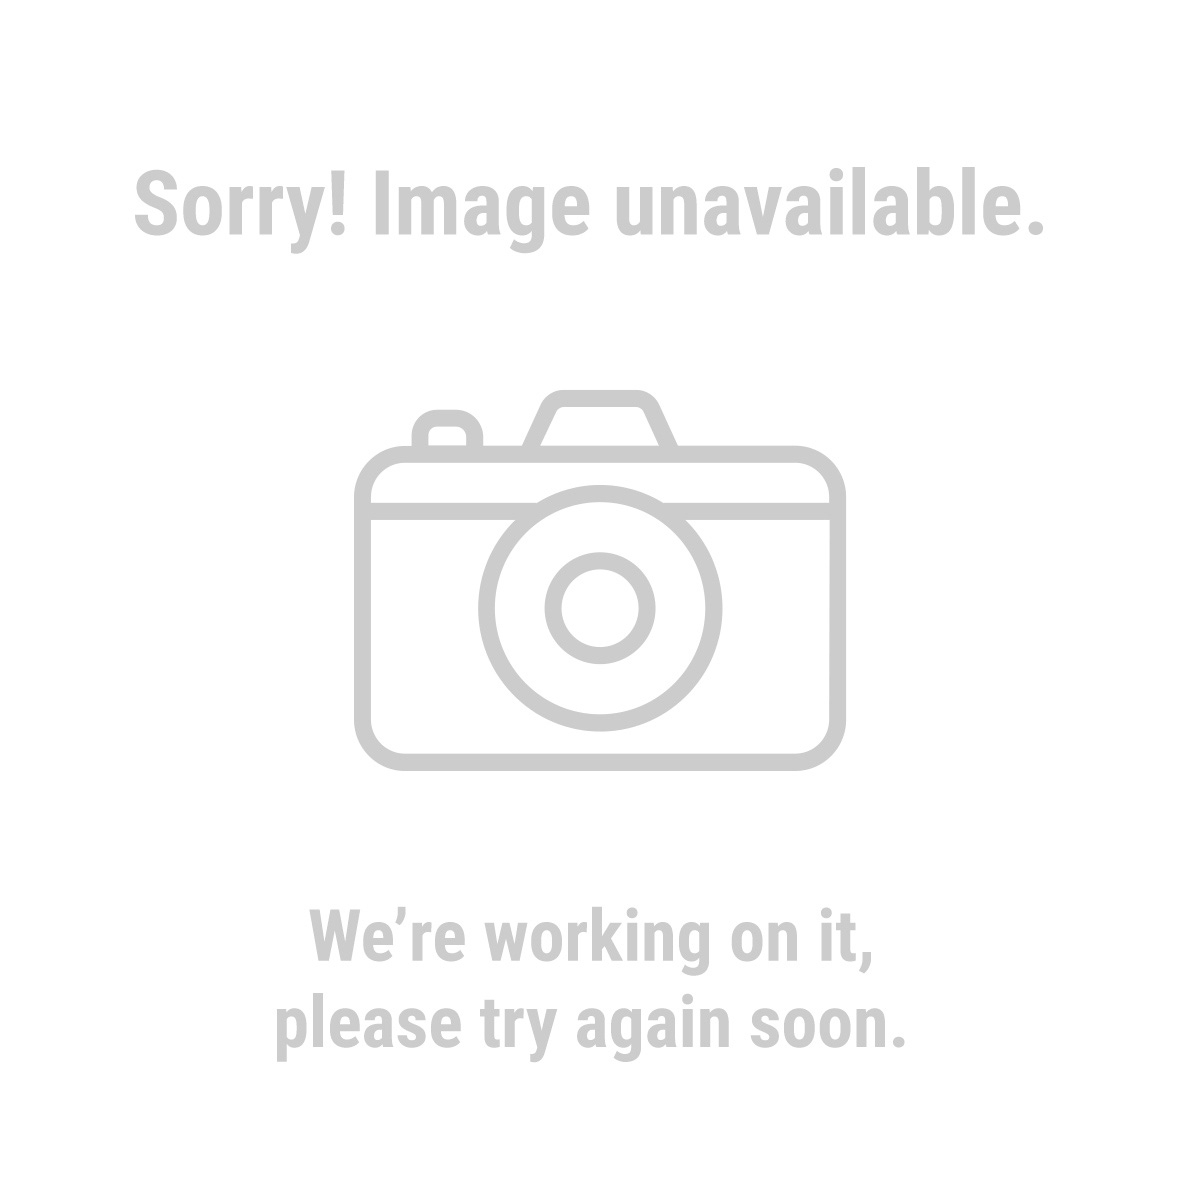 Fisherman's Habit 94511 Portable Fish Finder